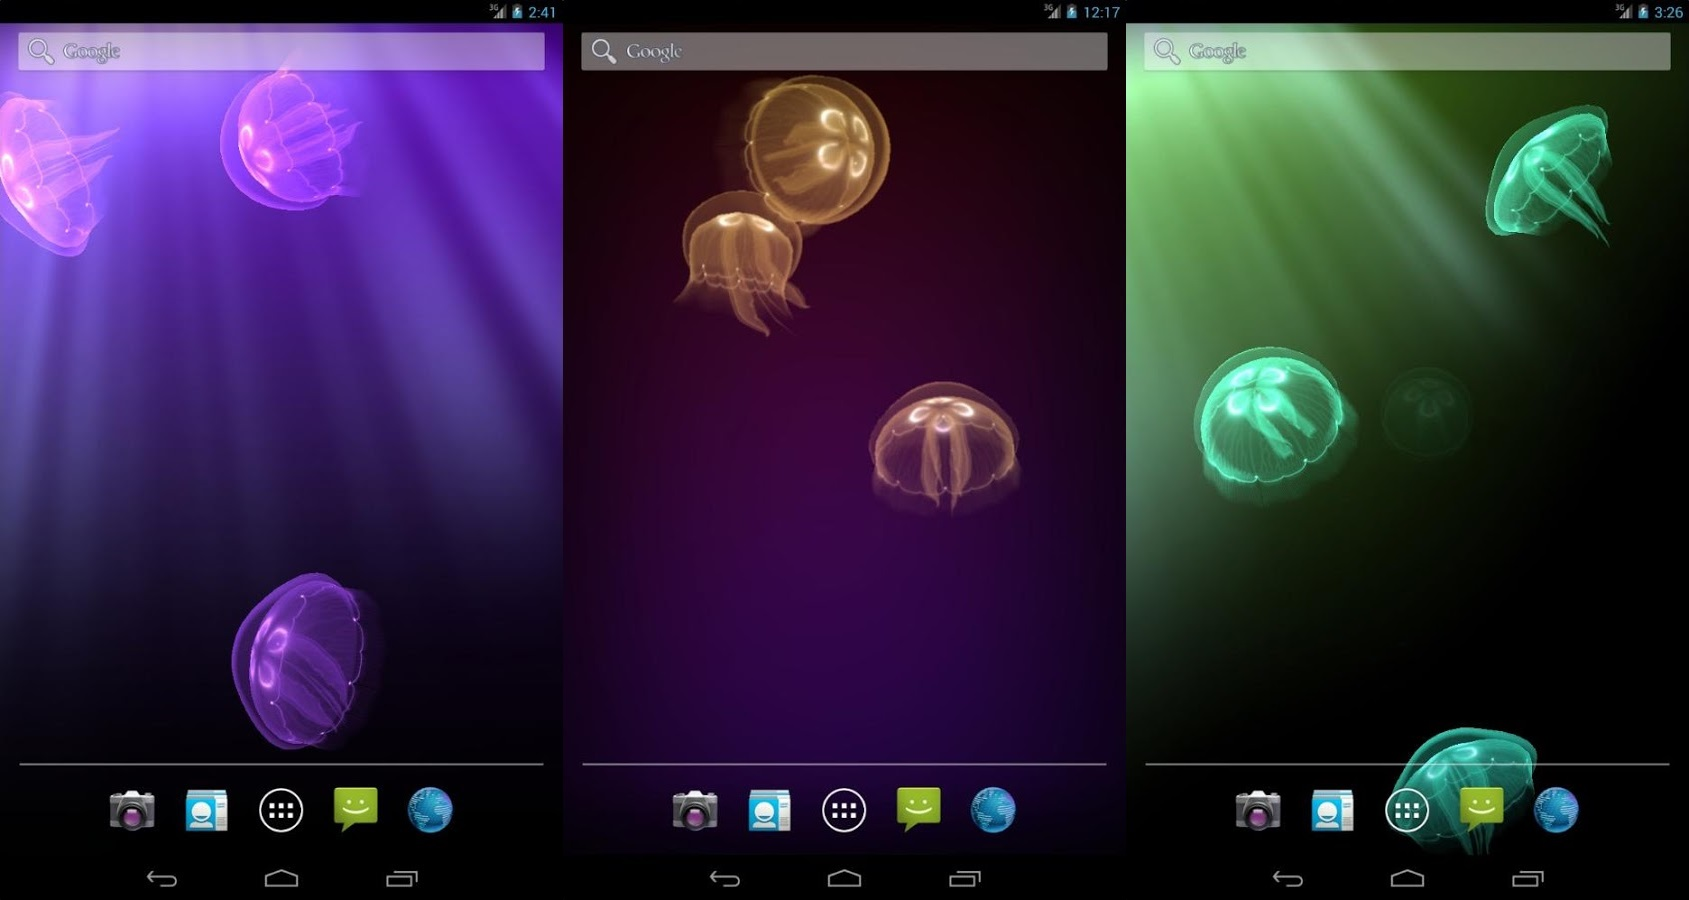 Download Best Interactive Live Wallpaper Android Gallery